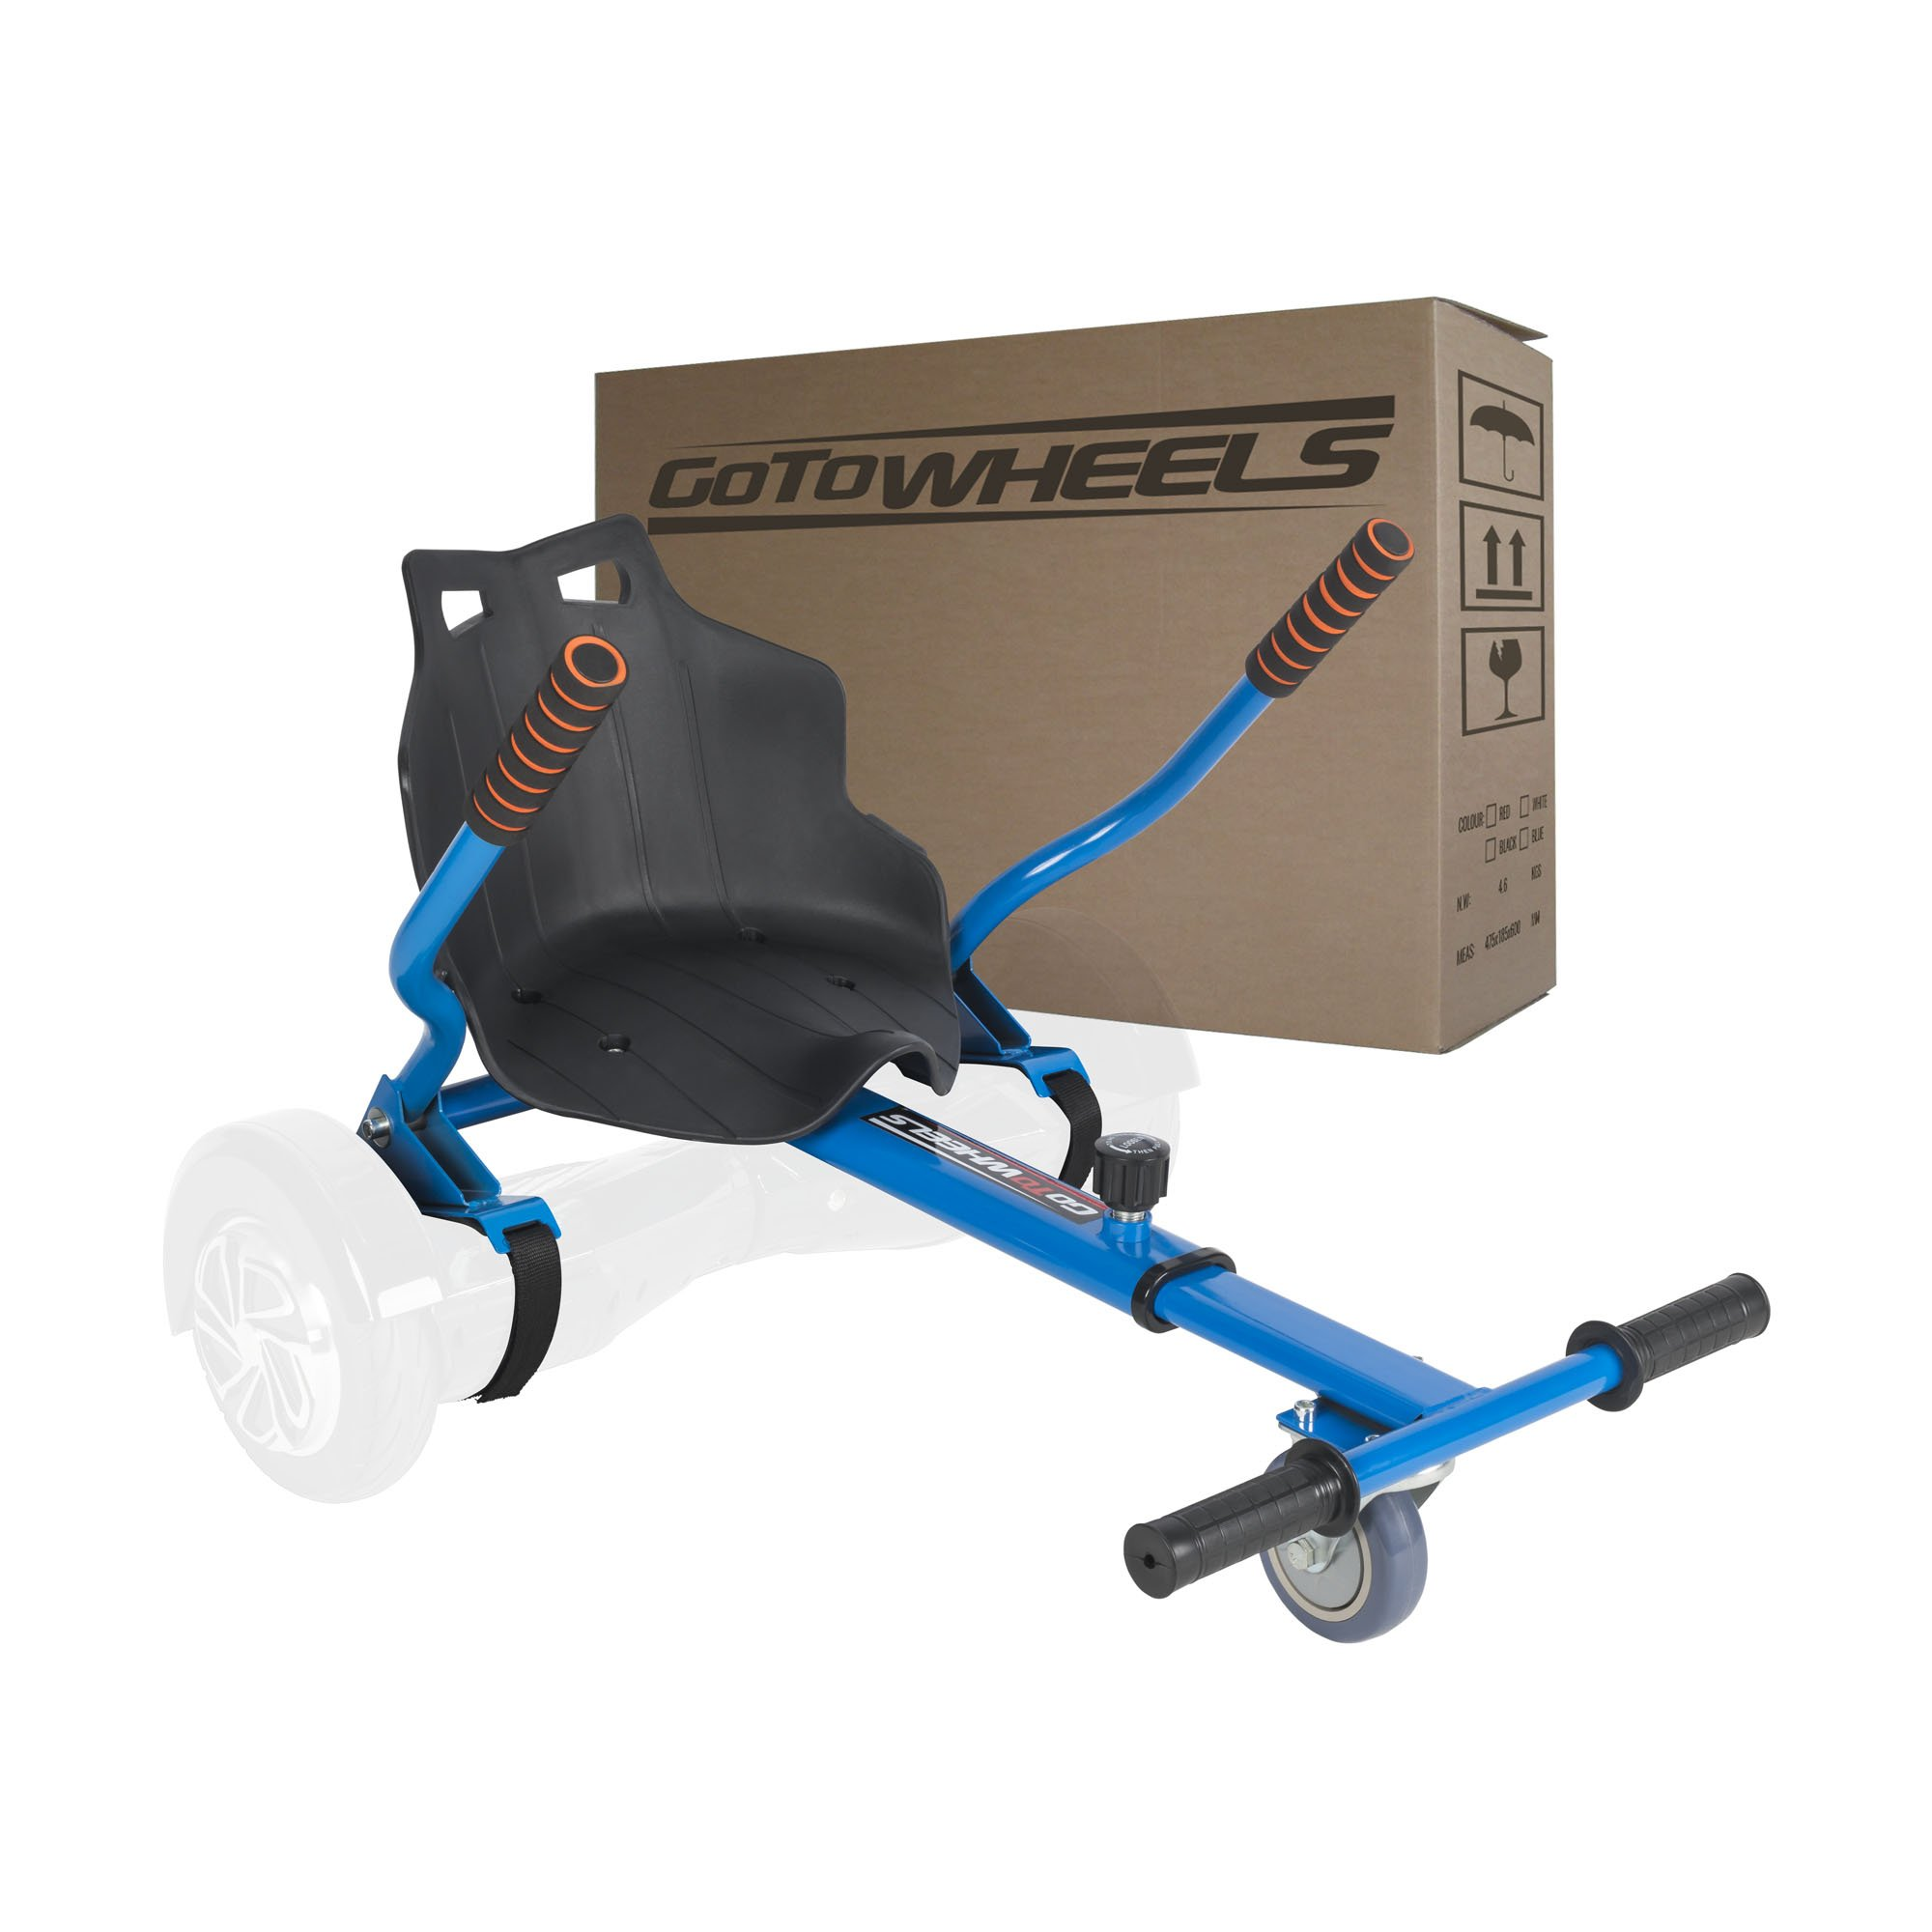 Adjustable Hoverboard Car Style Holder for 6.5'' 8'' 10'' Two Wheel Self Balancing Scooter with 4 Length Adjustments (Balance Board Not Included) (Blue)